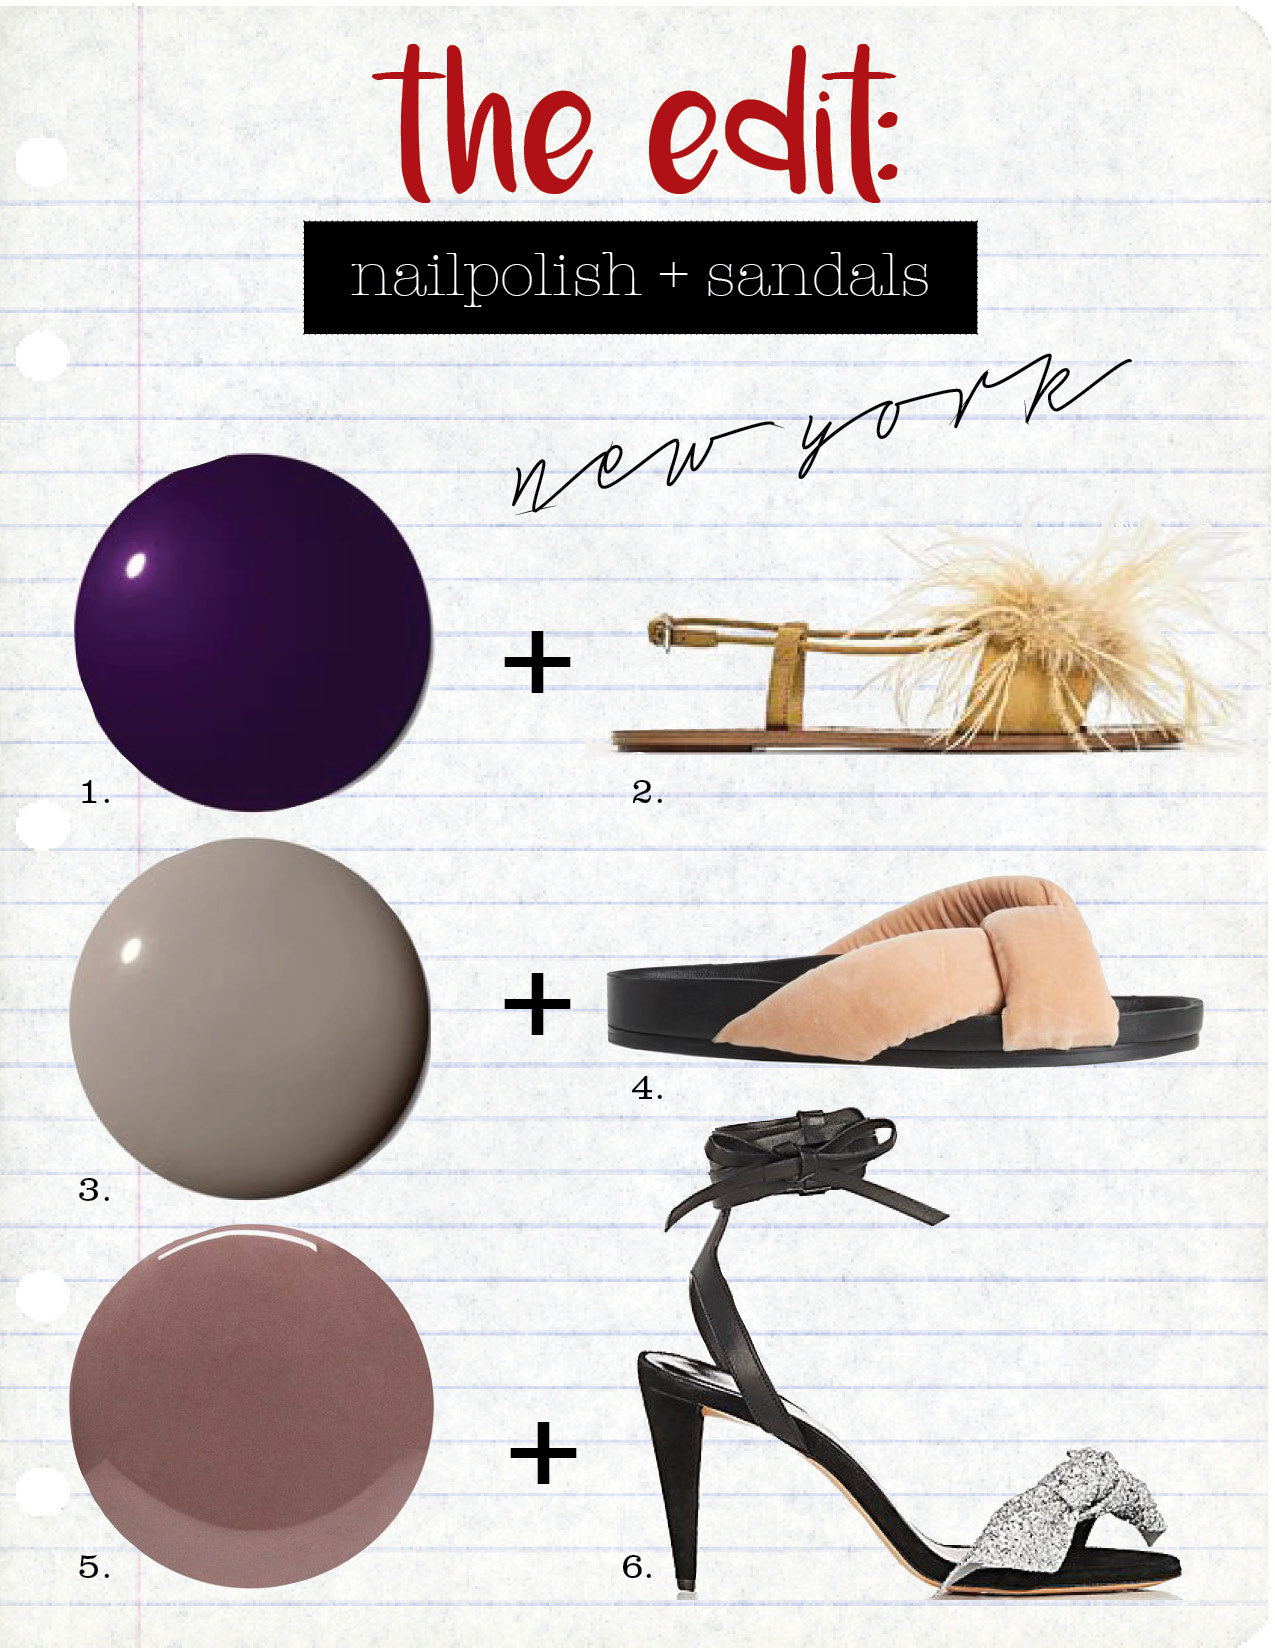 1. chanel le vernis longwear nail color in roubachka, $28,  violetgrey.com  2. zara flat sandals with feathers, $49,  zara.com  3. chanel le vernis longwear nail colour in garconne, $28,  violetgrey.com  4. chloe nolan velvet slides, $555,  matchesfashion.com  5. tom ford beauty nail polish in black sugar, $35,  net-a-porter.com  6. isabel marant akynn suede & leather sandals, $620,  barneys.com